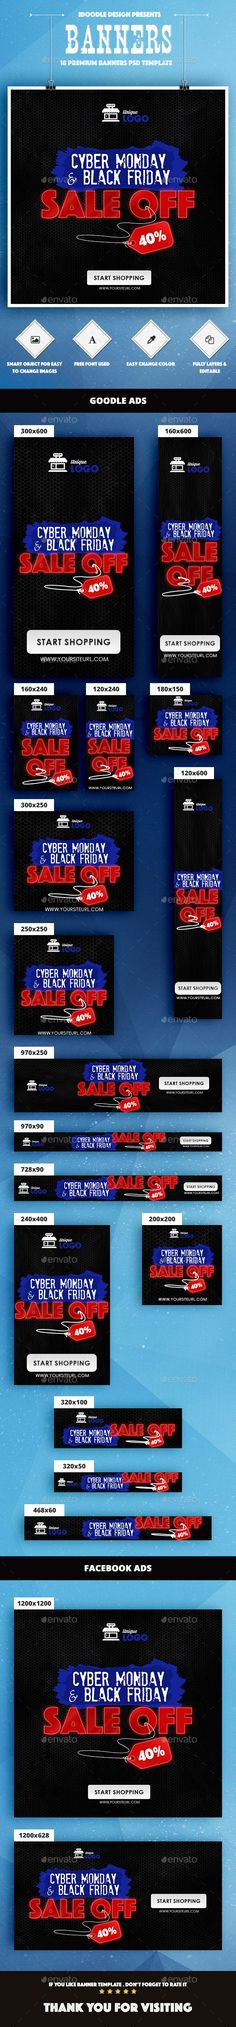 DESCRIPTION : Cyber Monday Banners Ad PSD Template is a clean and unique design so far using the latest trendy material design fo